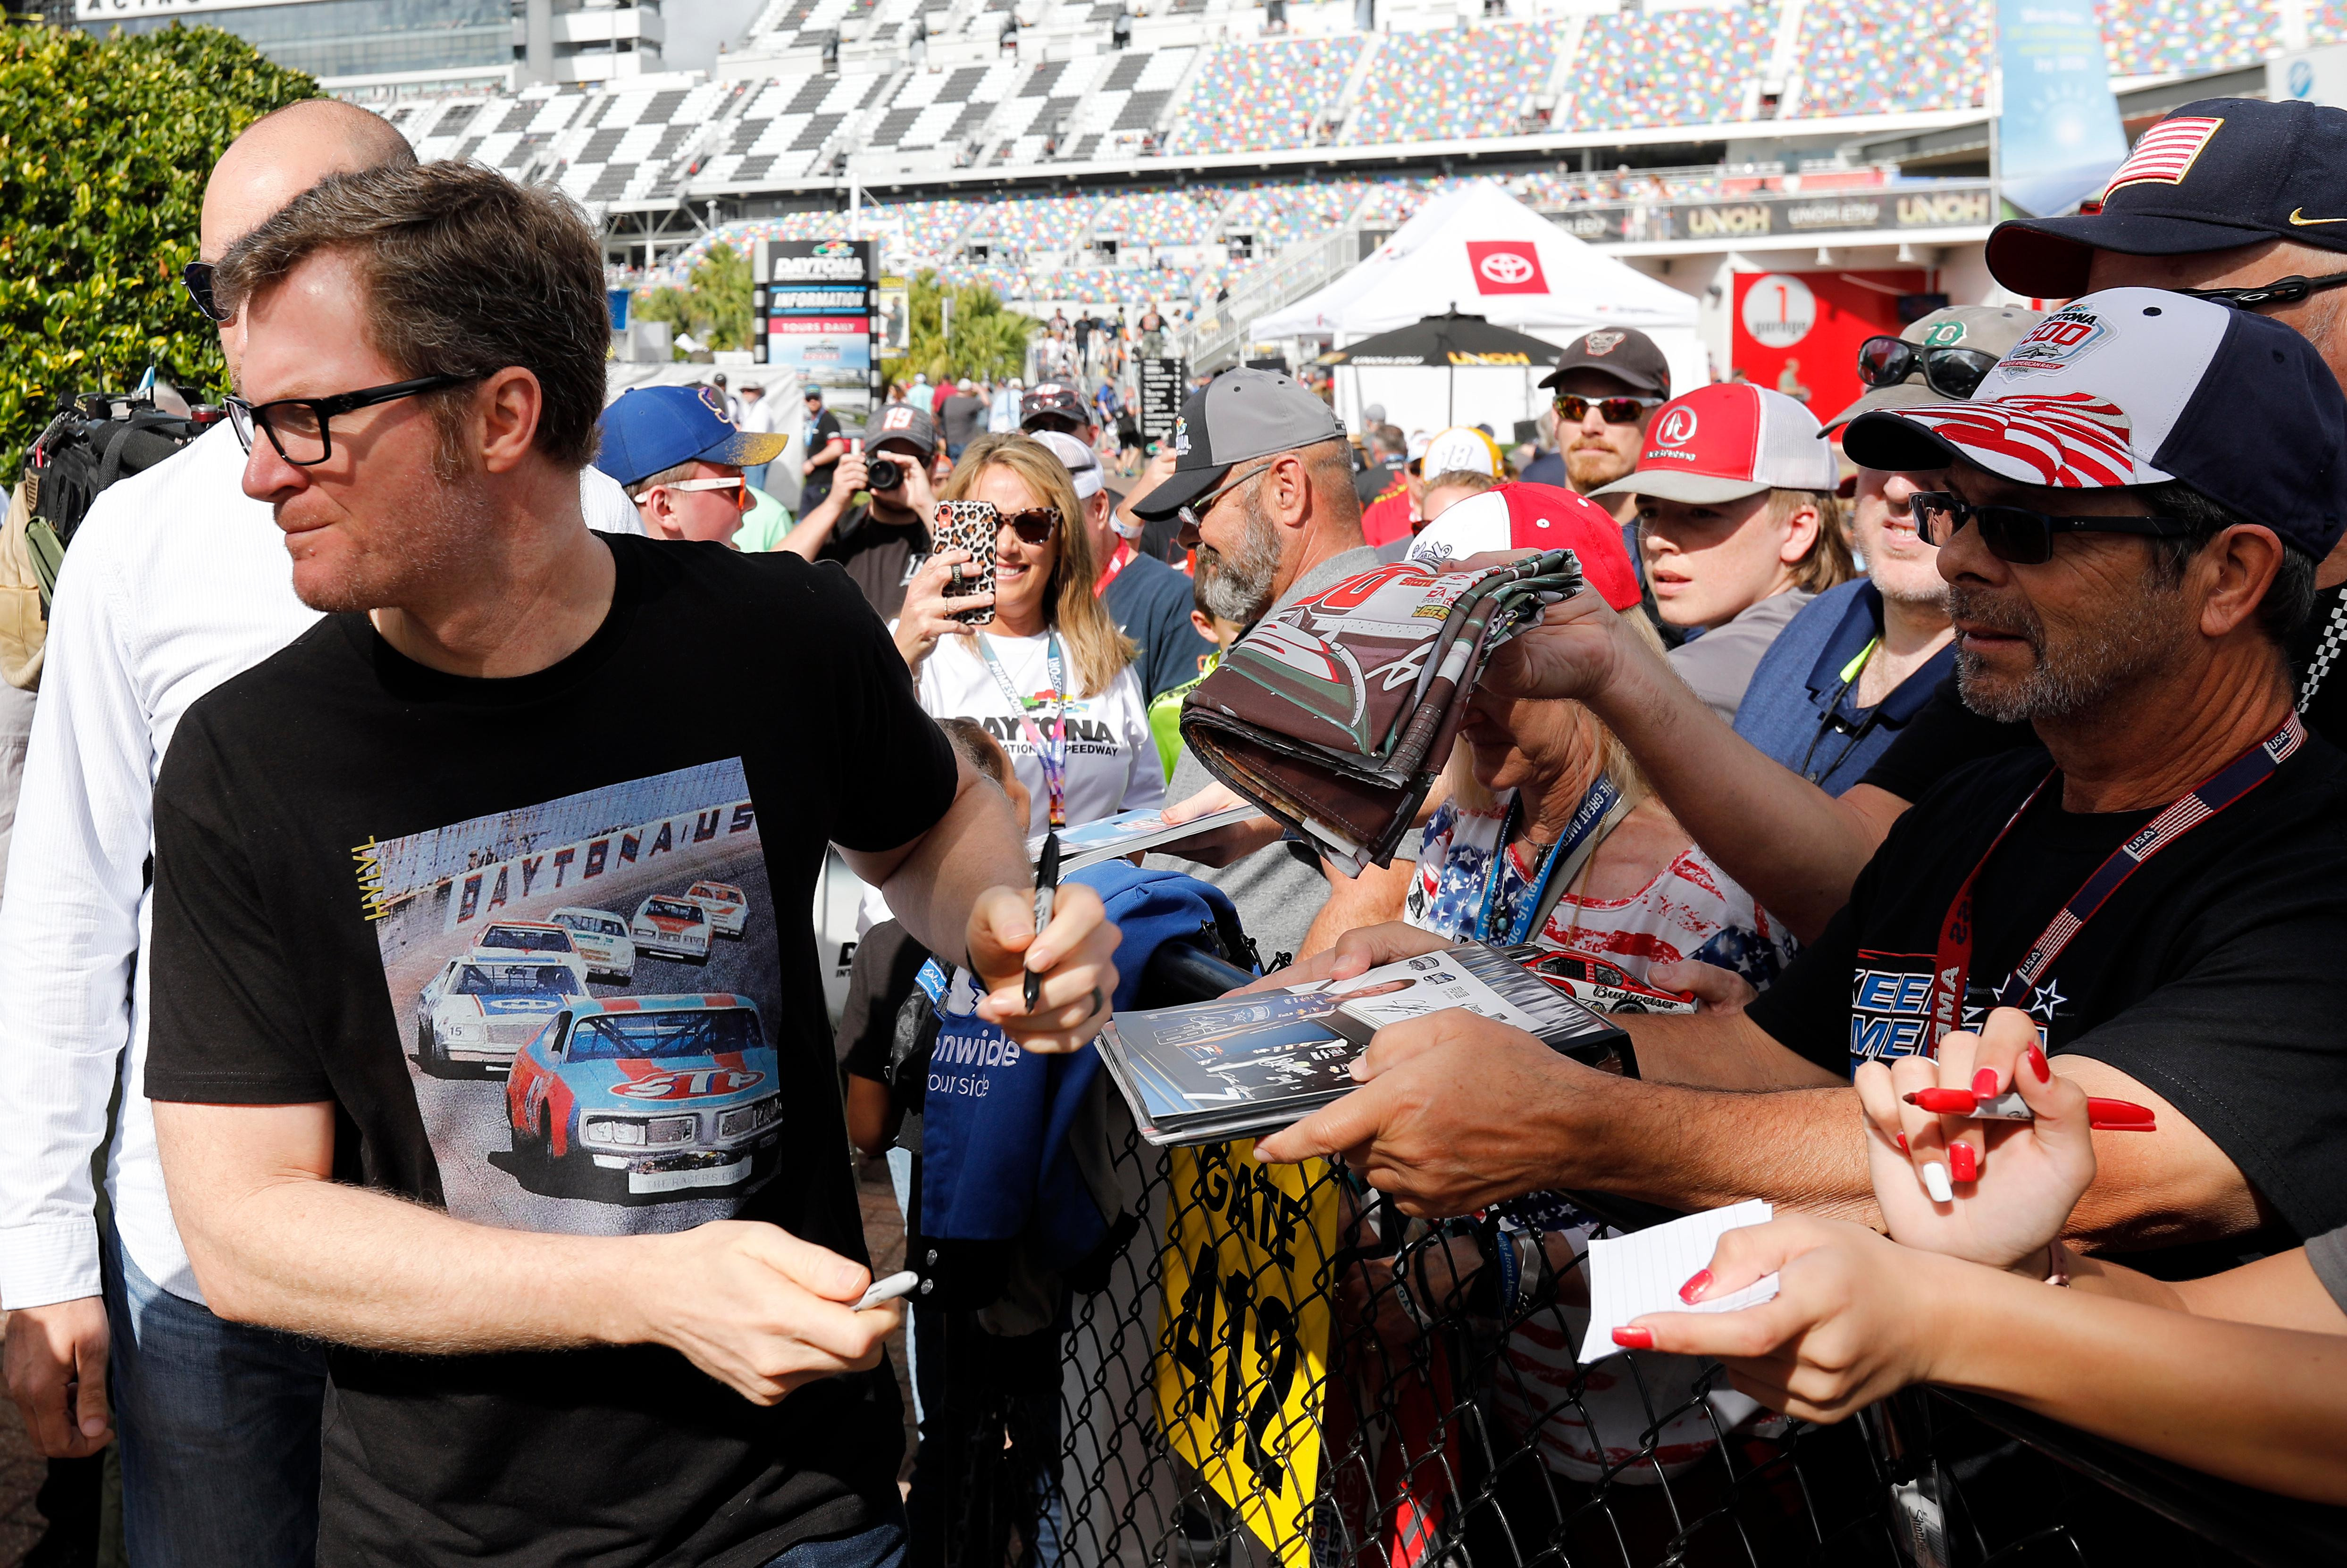 Dale Earnhardt Jr., team owner and TV analyst signs autographs outside the media center before the NASCAR Daytona 500 auto race at Daytona International Speedway, Sunday, Feb. 16, 2020, in Daytona Beach, Fla. (AP Photo/Terry Renna)